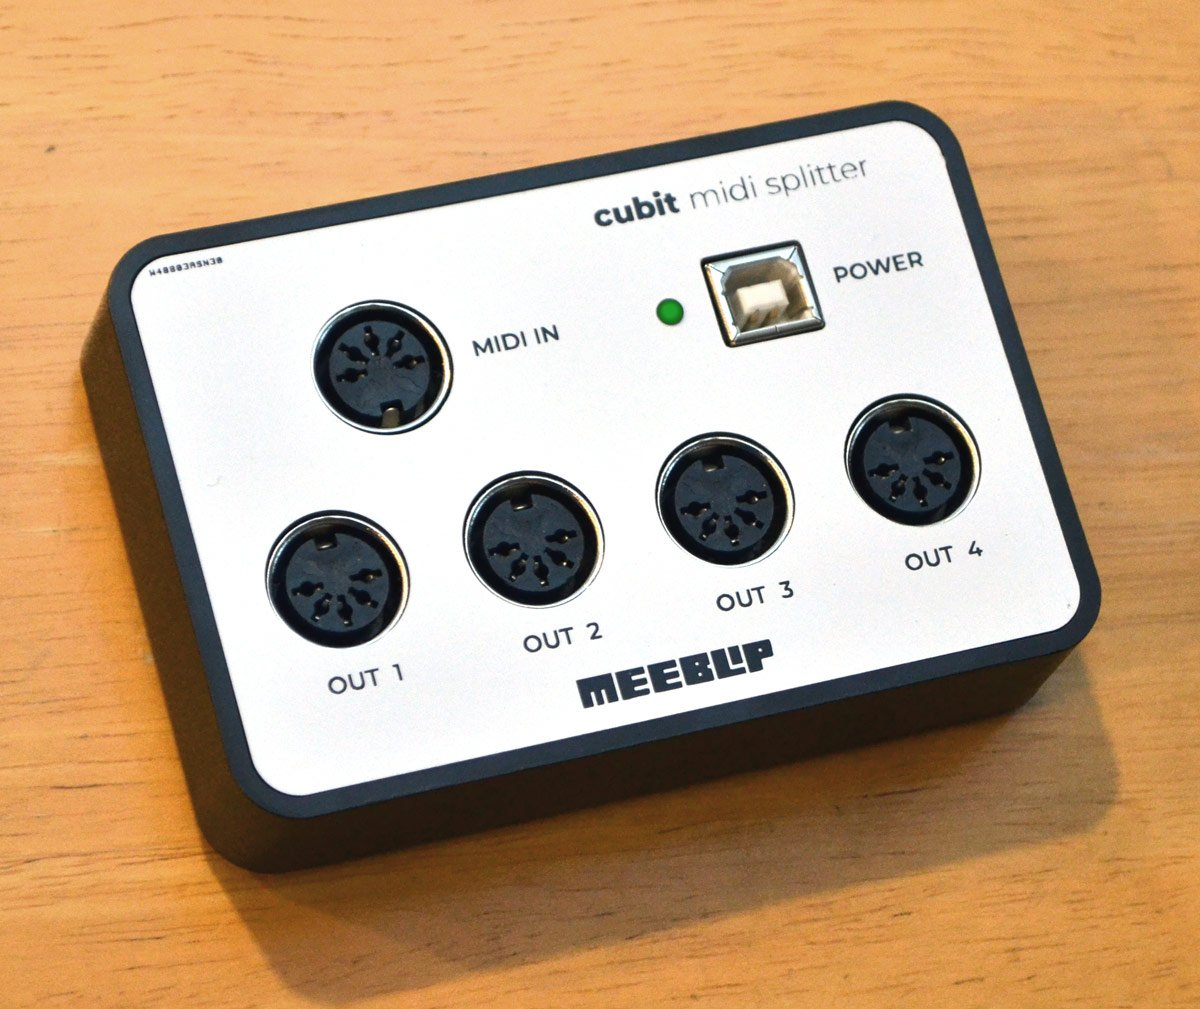 MeeBlip cubit: 4-port MIDI splitter